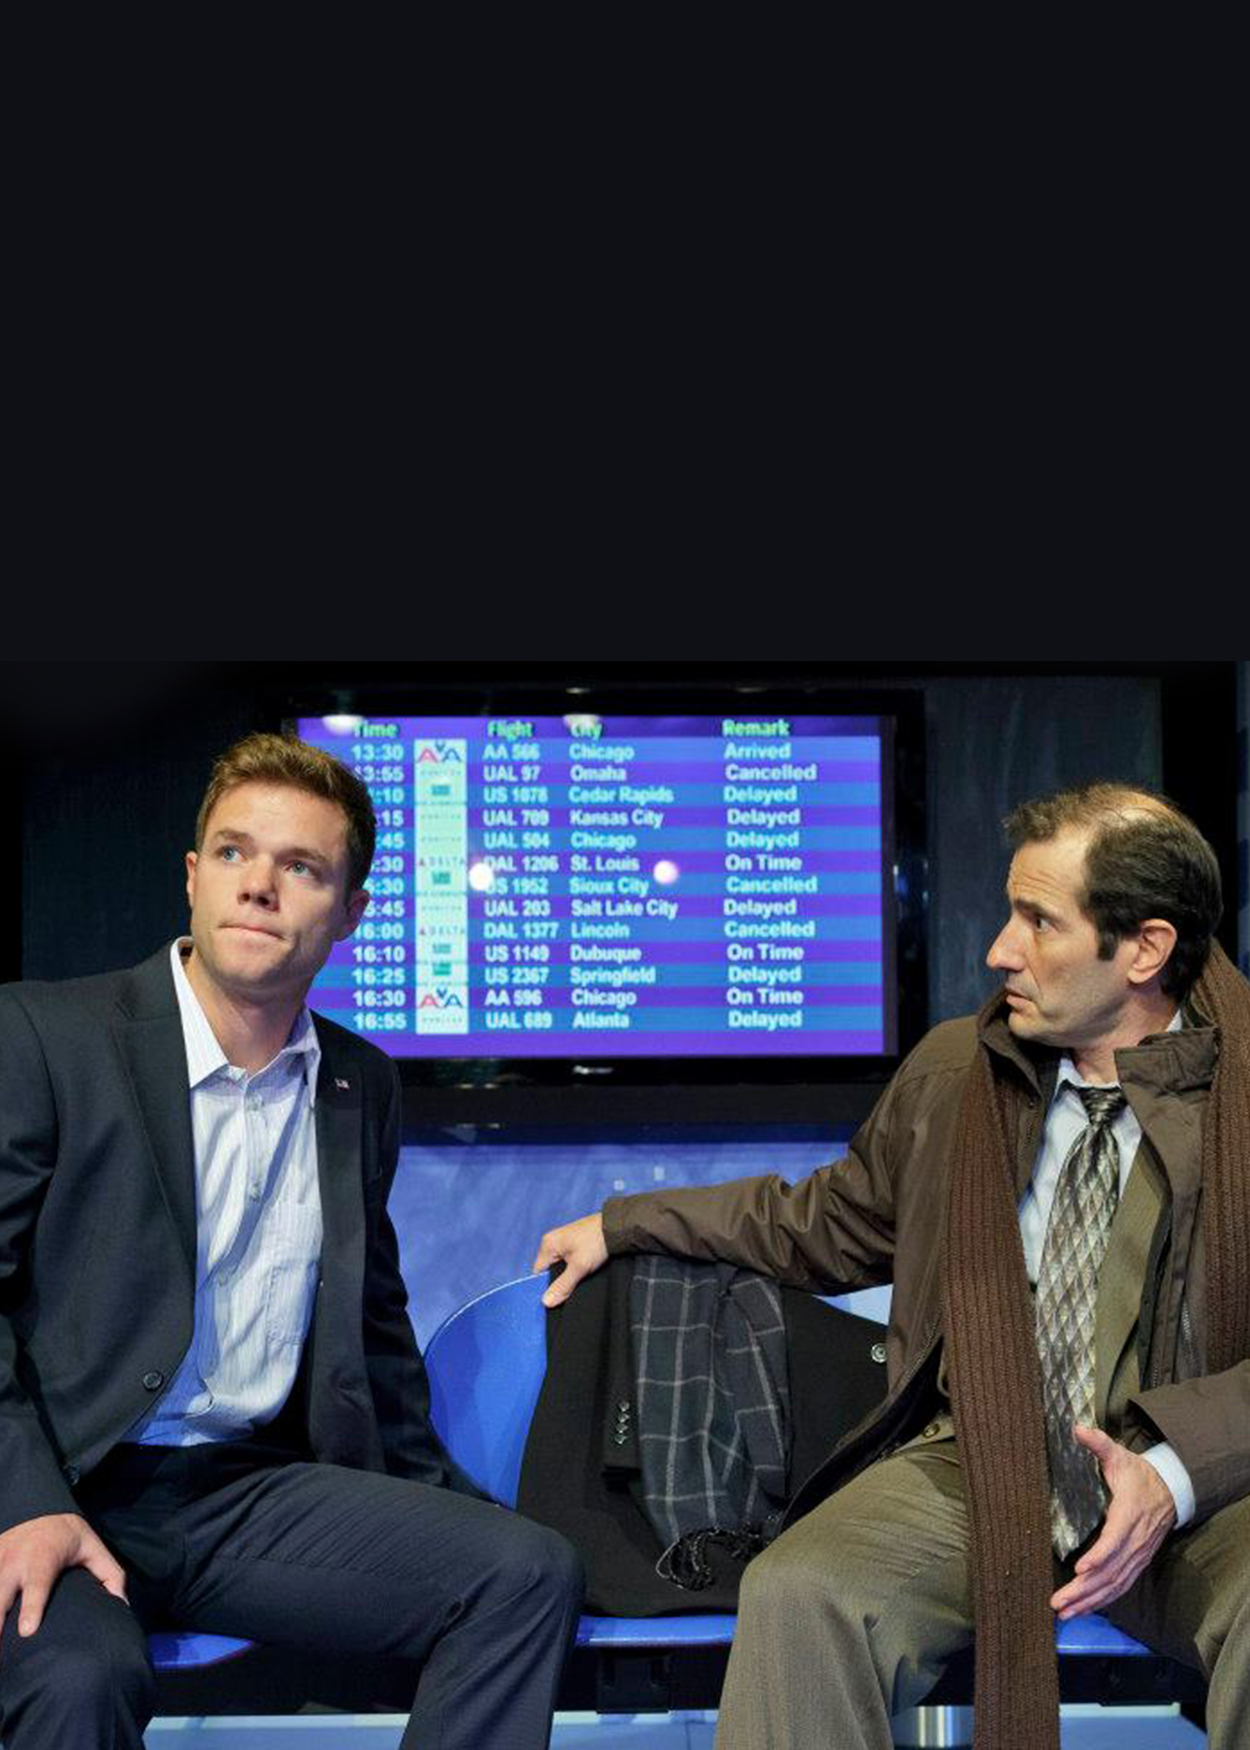 Two men sit inside an airport, a flight departure screen is behind them